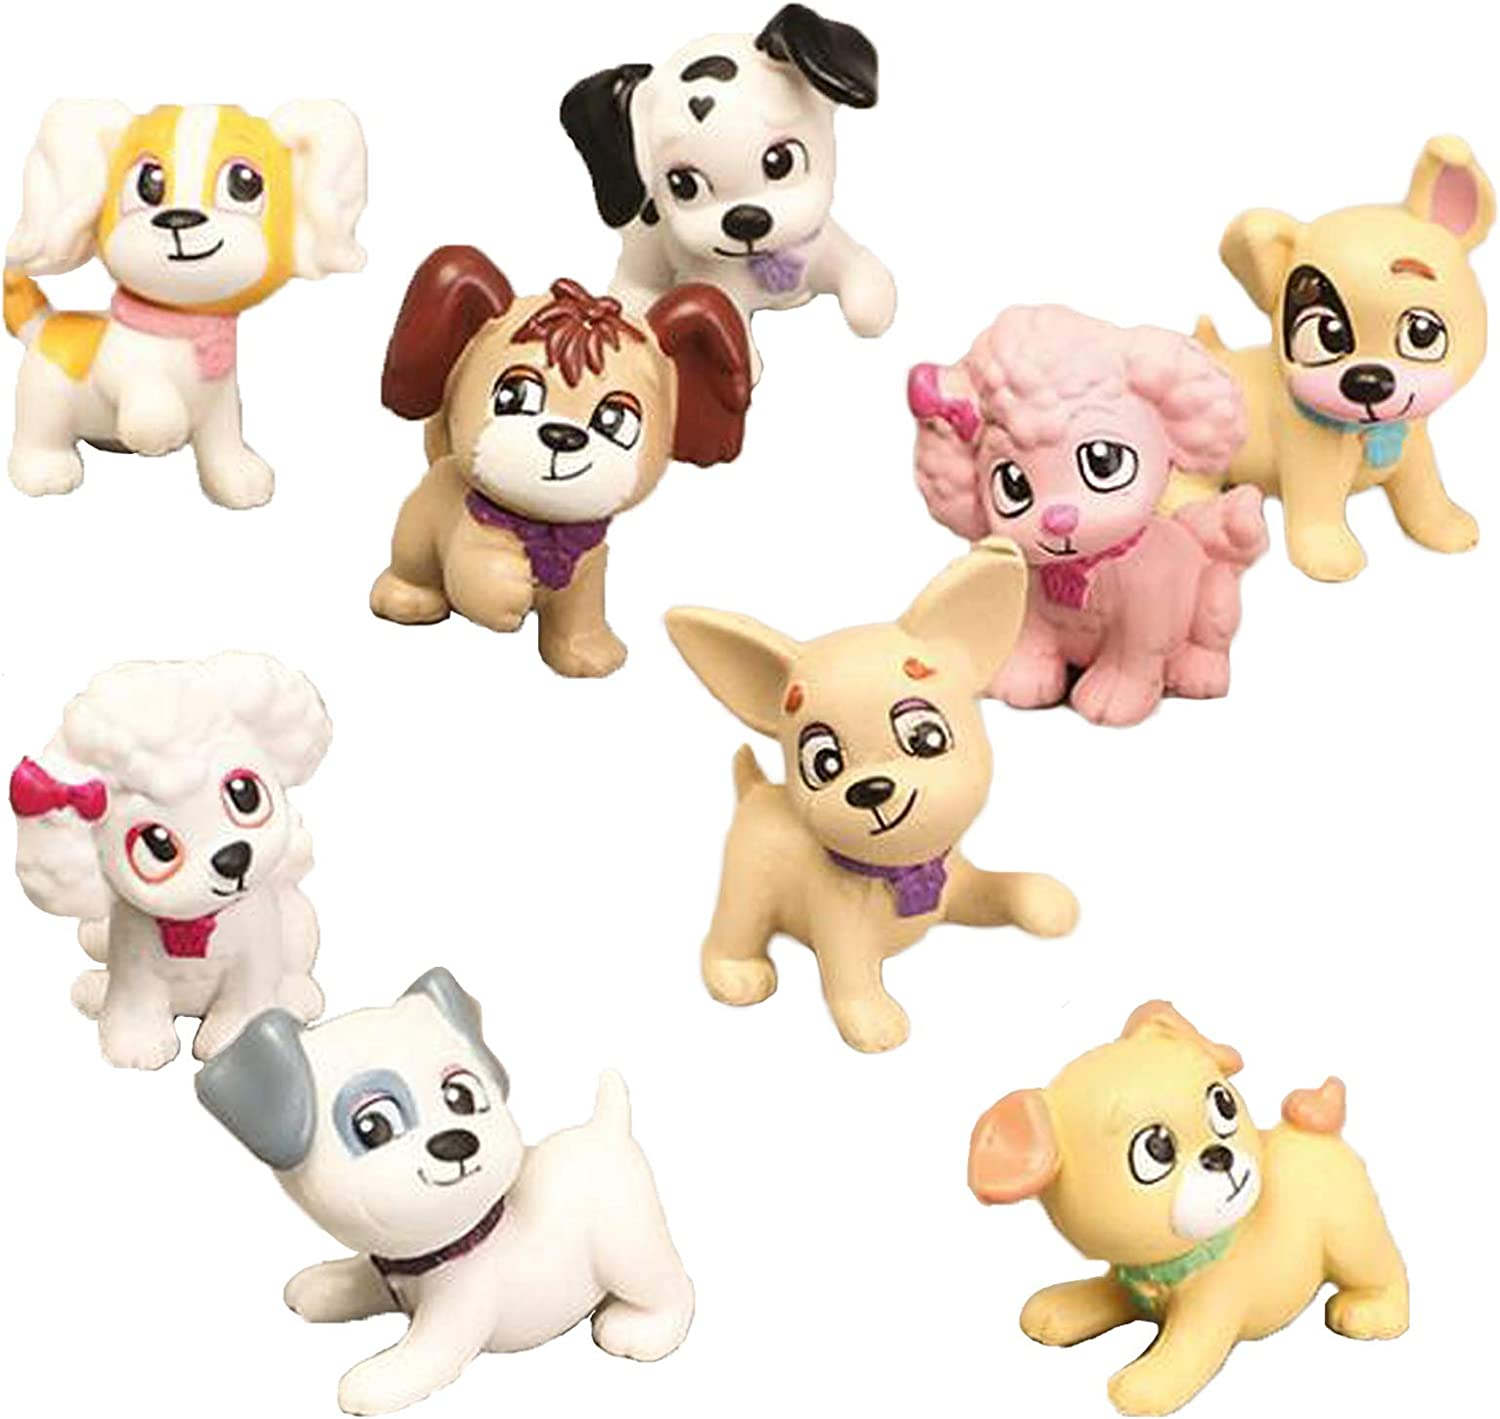 Dog Figurines Direct store Playset 9 Cheap mail order shopping Pcs Puppy Figures Realistic Detailed Fa